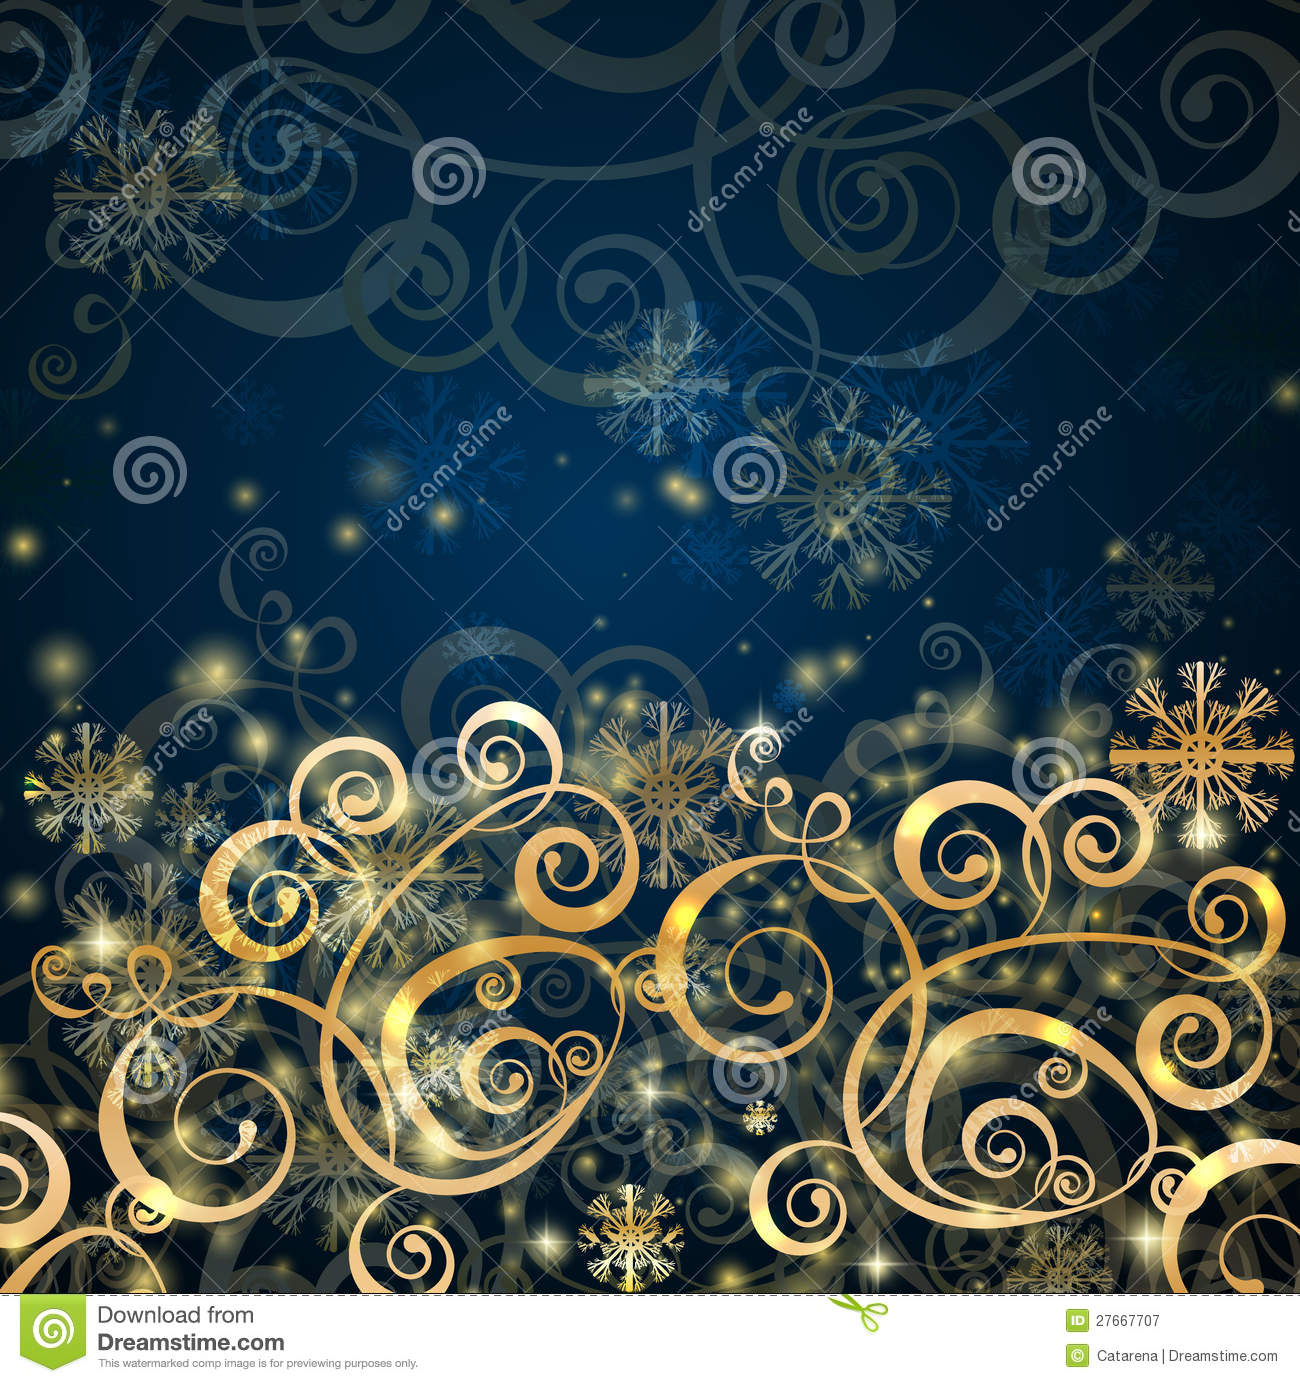 Elegant blue and gold backgrounds for Dark blue and gold wallpaper